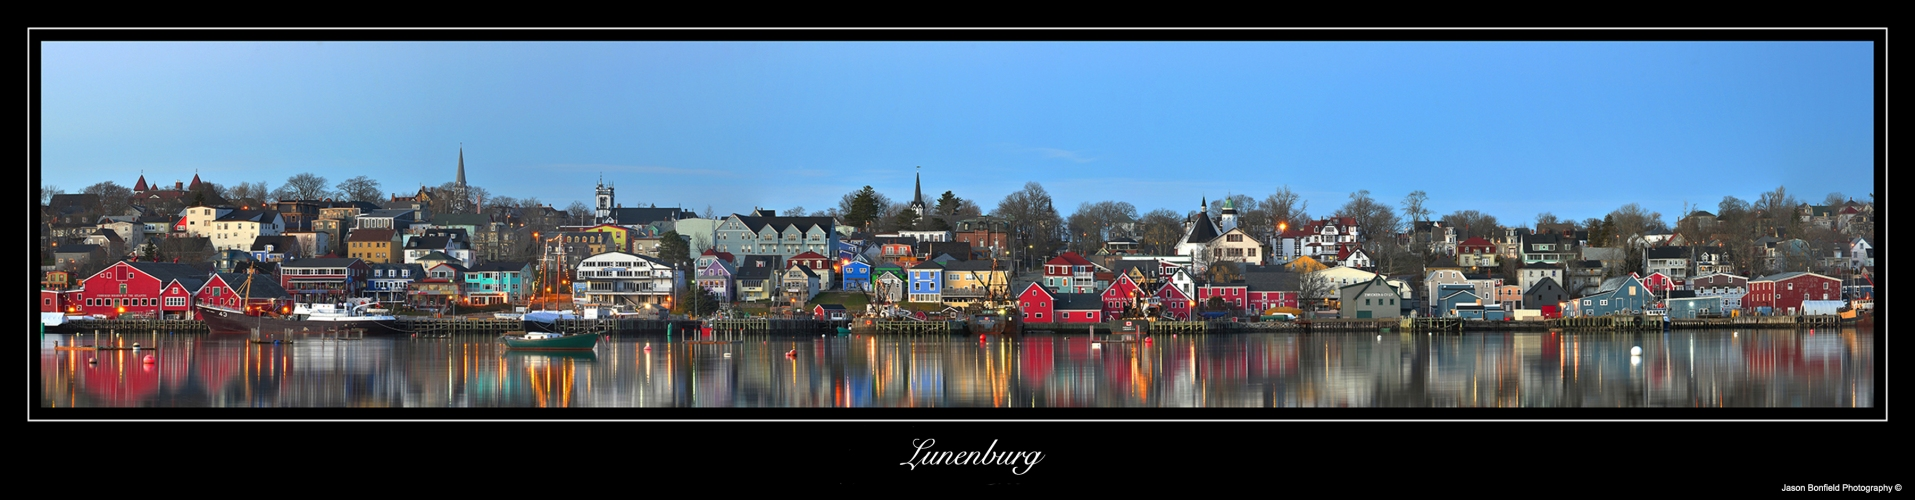 Panoramic landscape picture of Lunenburg town and a clear blue sky reflected in the waterfront in Luneburg County in Nova Scotia, Canada.